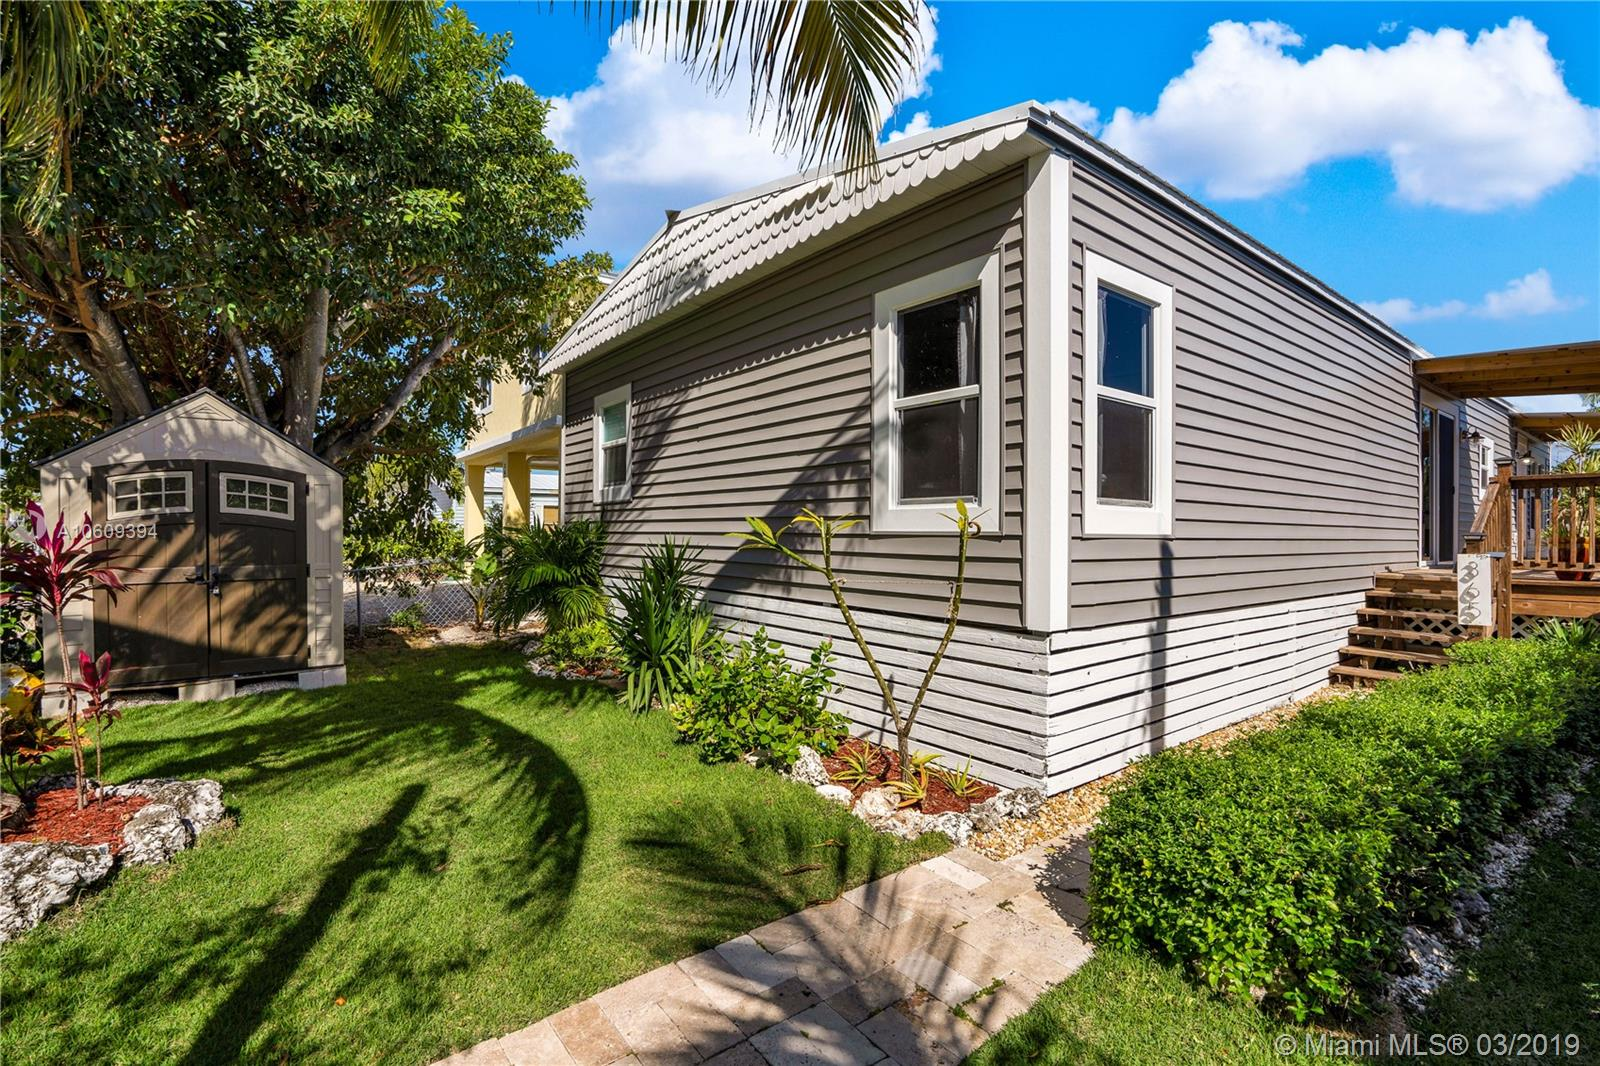 365 Crane St, Other City - Keys/Islands/Caribb, FL 33037 - Other City - Keys/Islands/Caribb, FL real estate listing